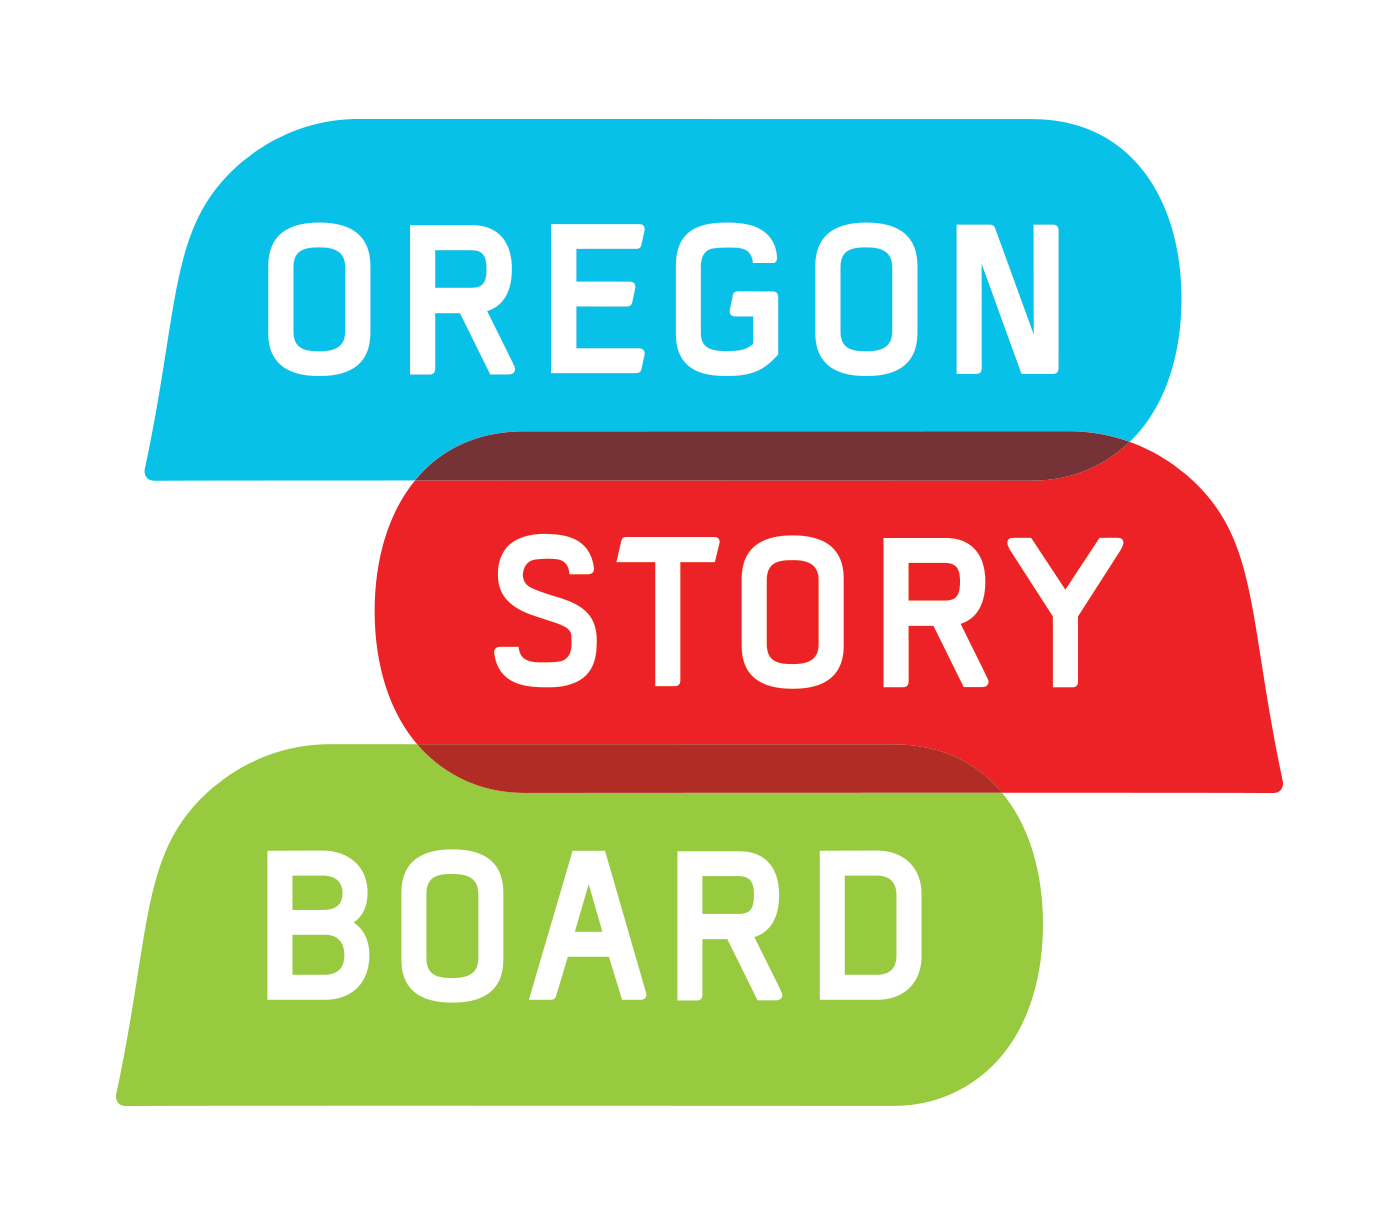 Oregon Story Board